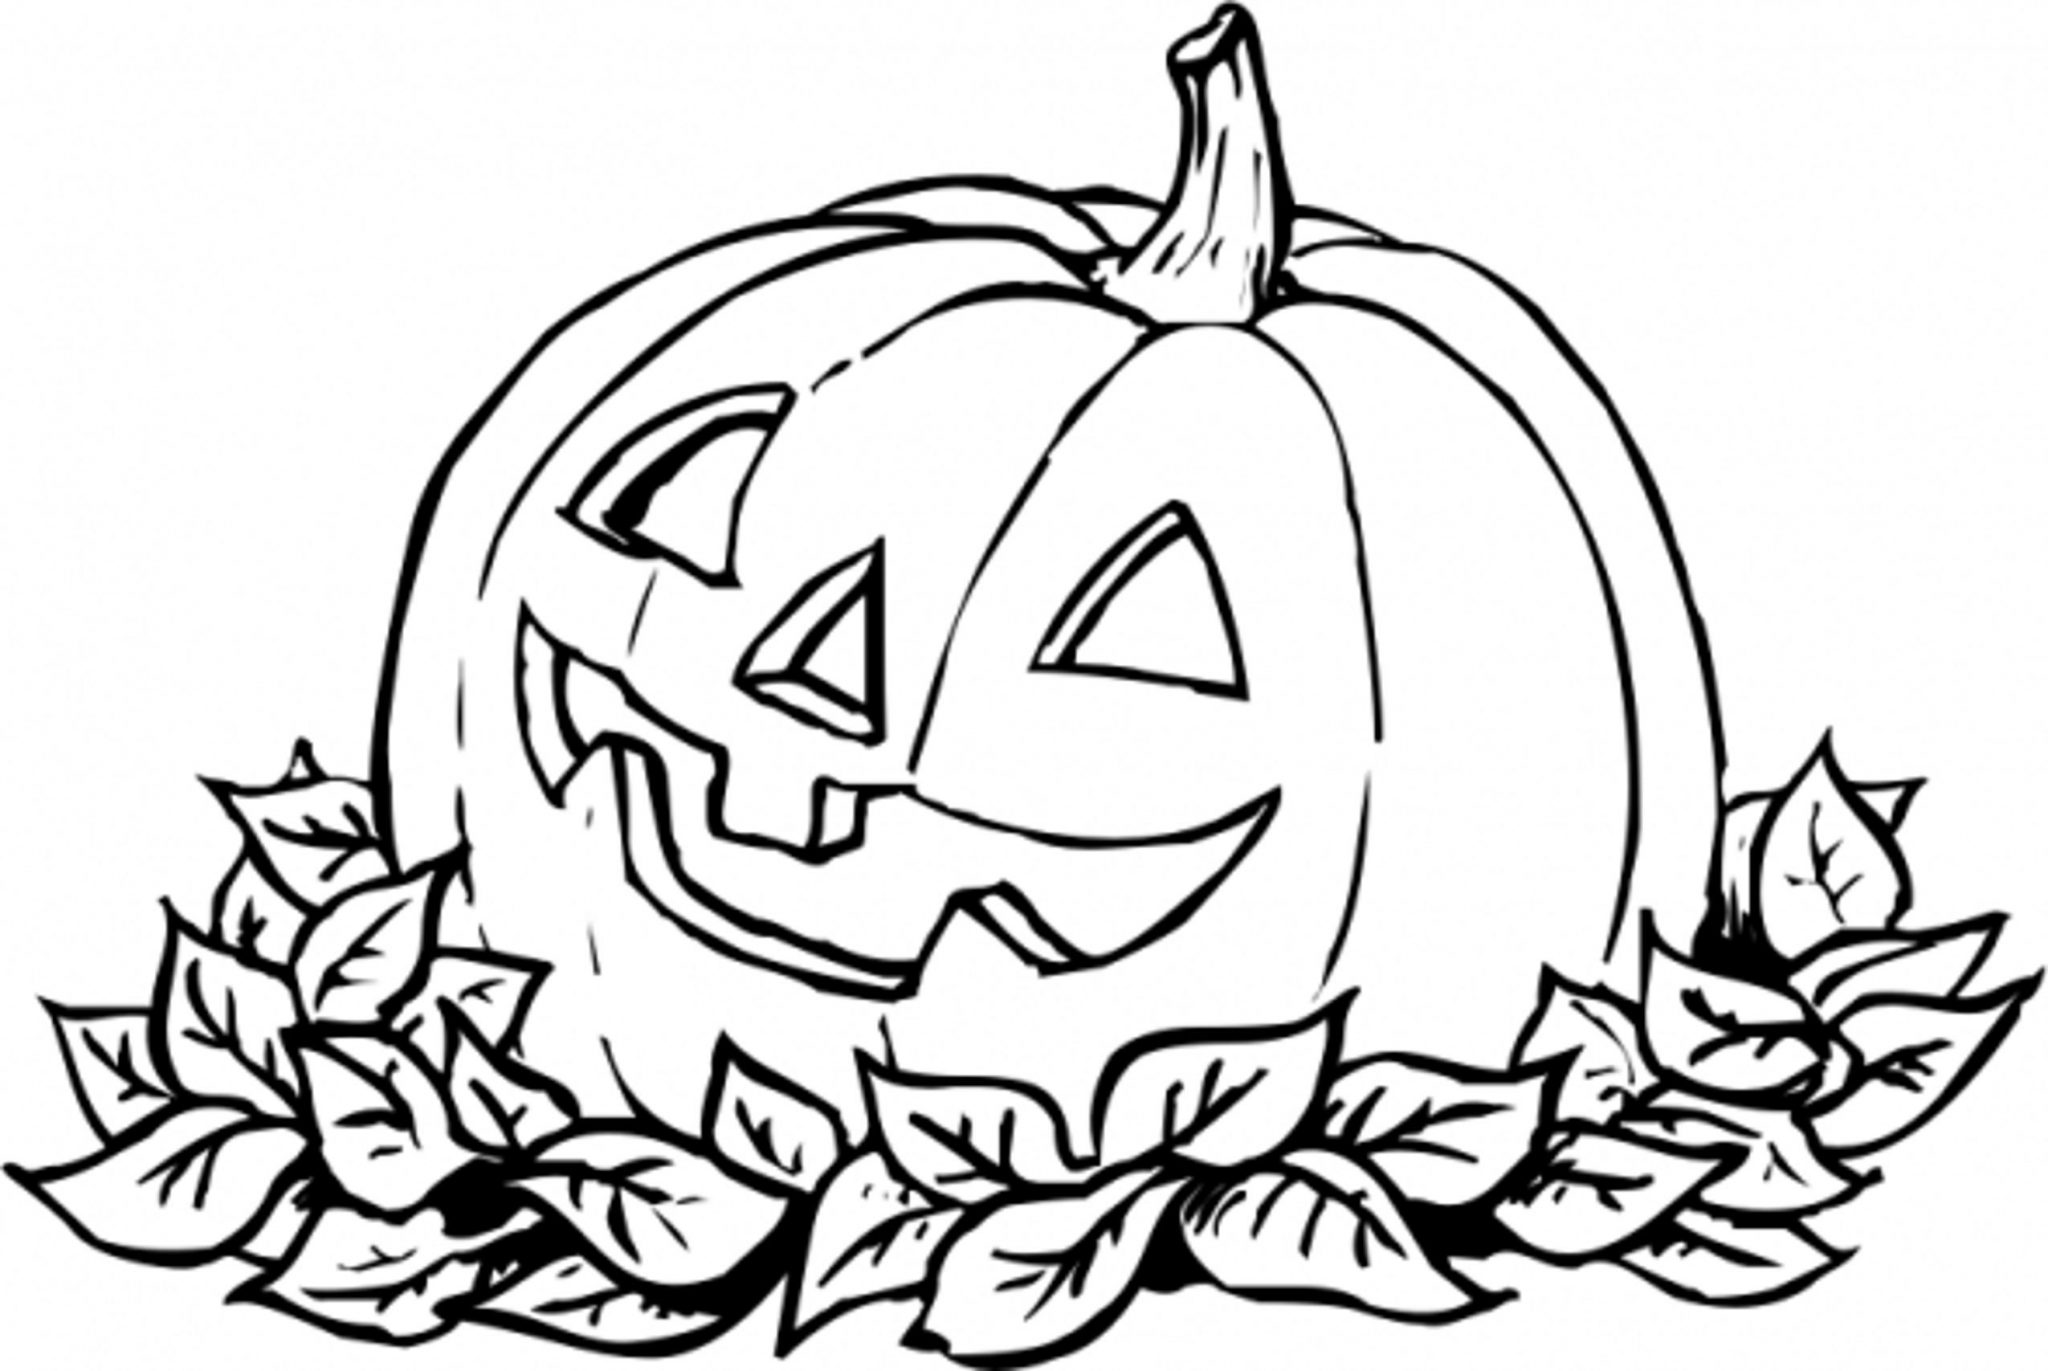 Print & Download - Pumpkin Coloring Pages and Benefits of Drawing ...